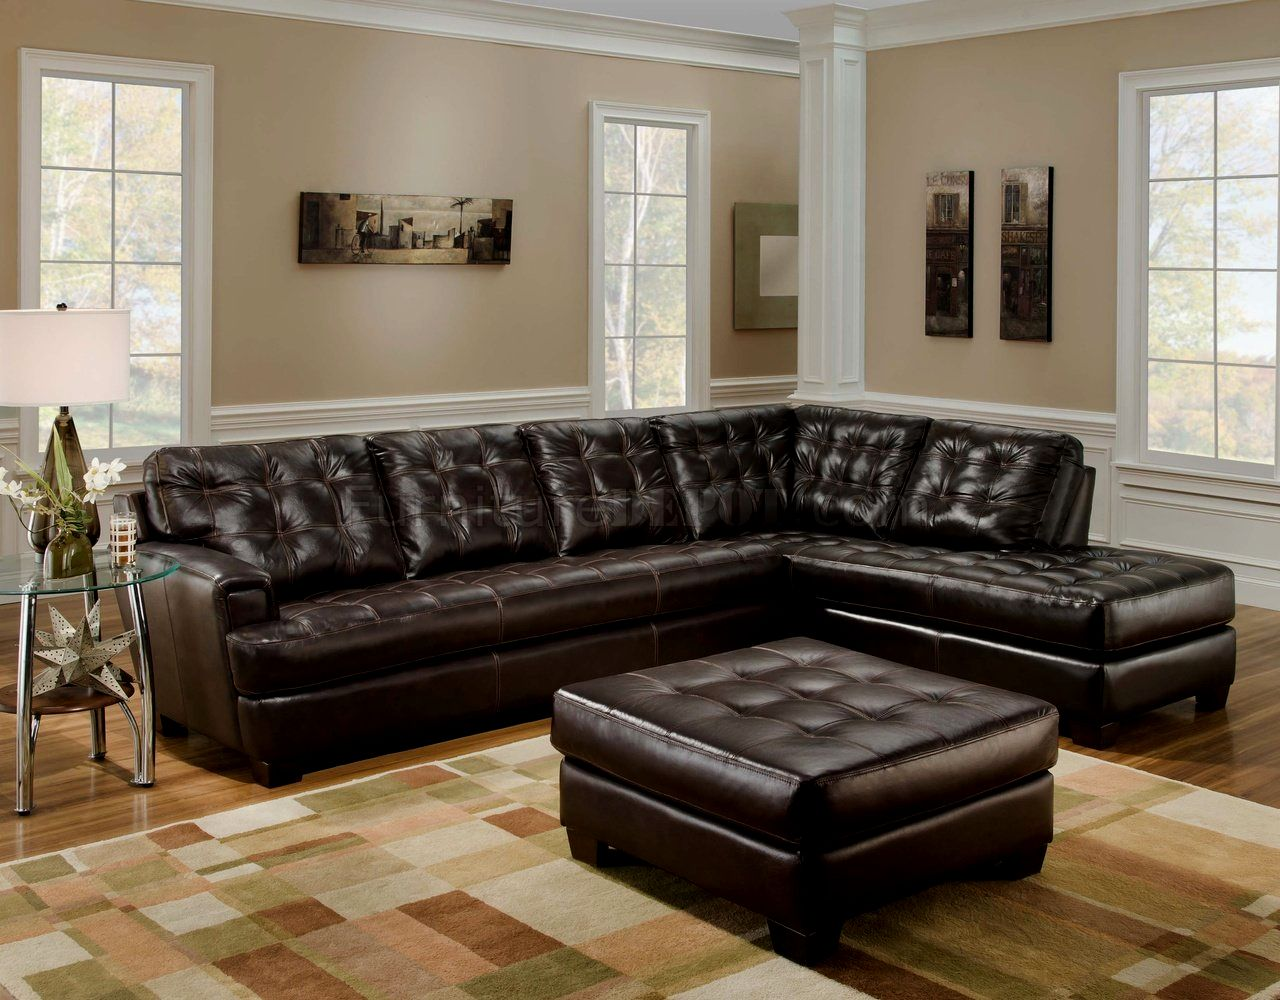 top leather sofas on sale decoration-Fancy Leather sofas On Sale Construction